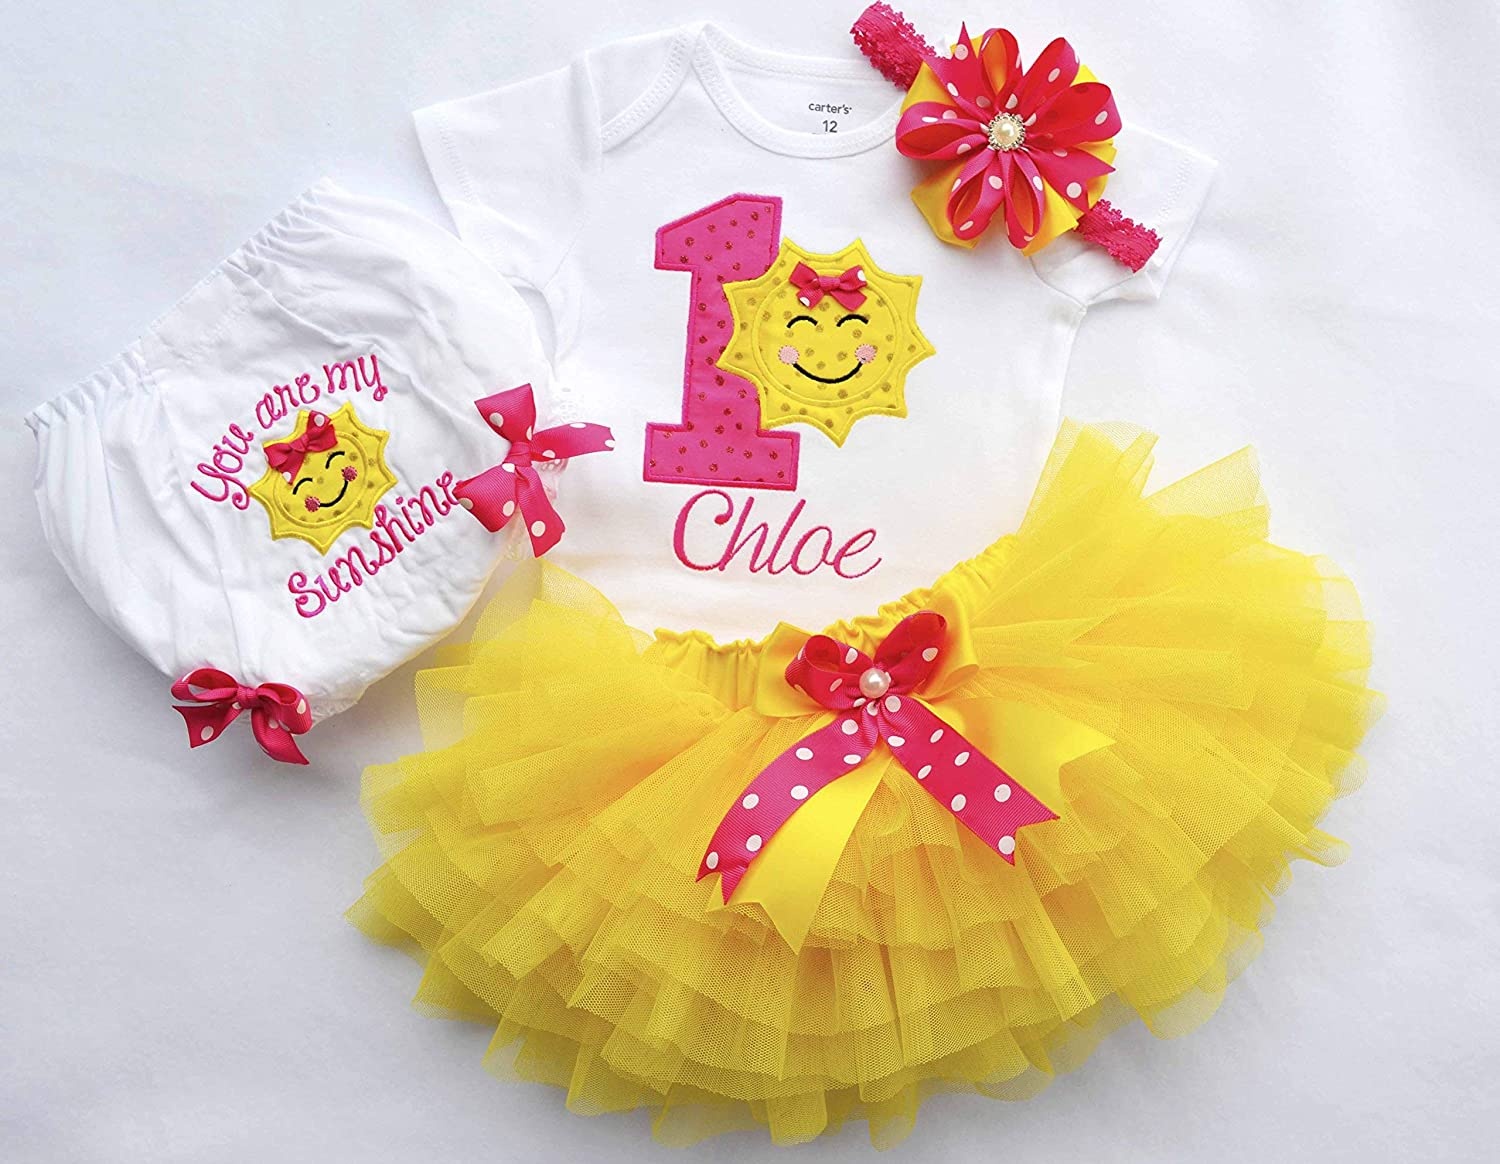 4ecae9042 Amazon.com: You are my sunshine outfit,First birthday outfit girl,Sunshine  Birthday Outfit,Girls 1st Birthday Outfit,Cake smash outfit girl, pink  yellow: ...